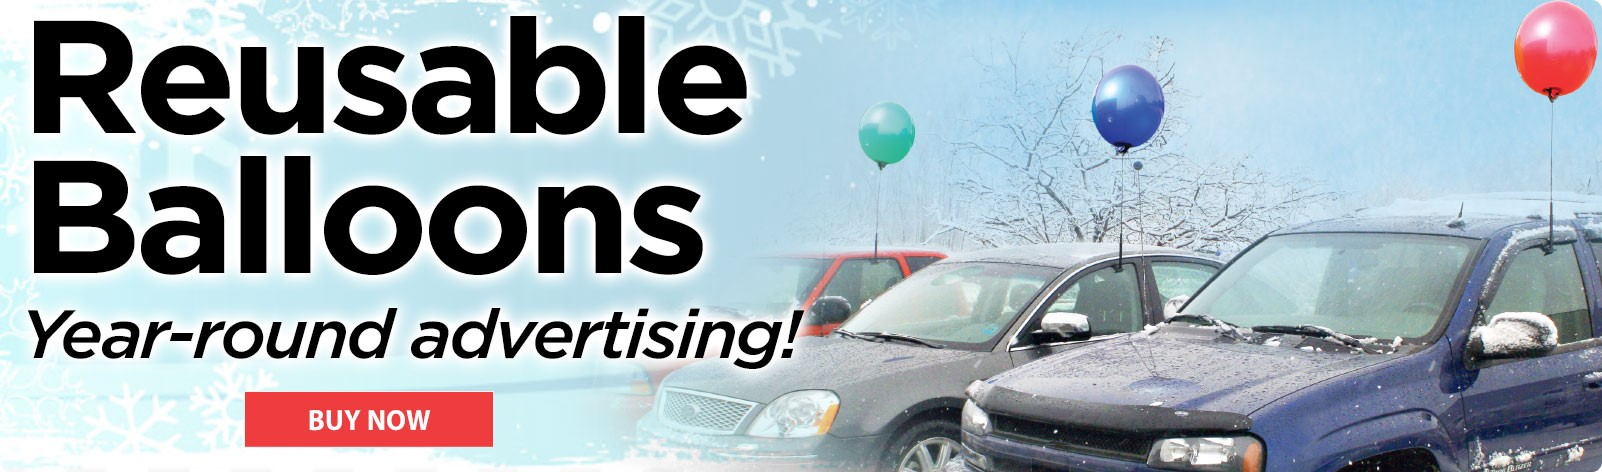 Reusable Balloons, year-round advertising for your car dealership